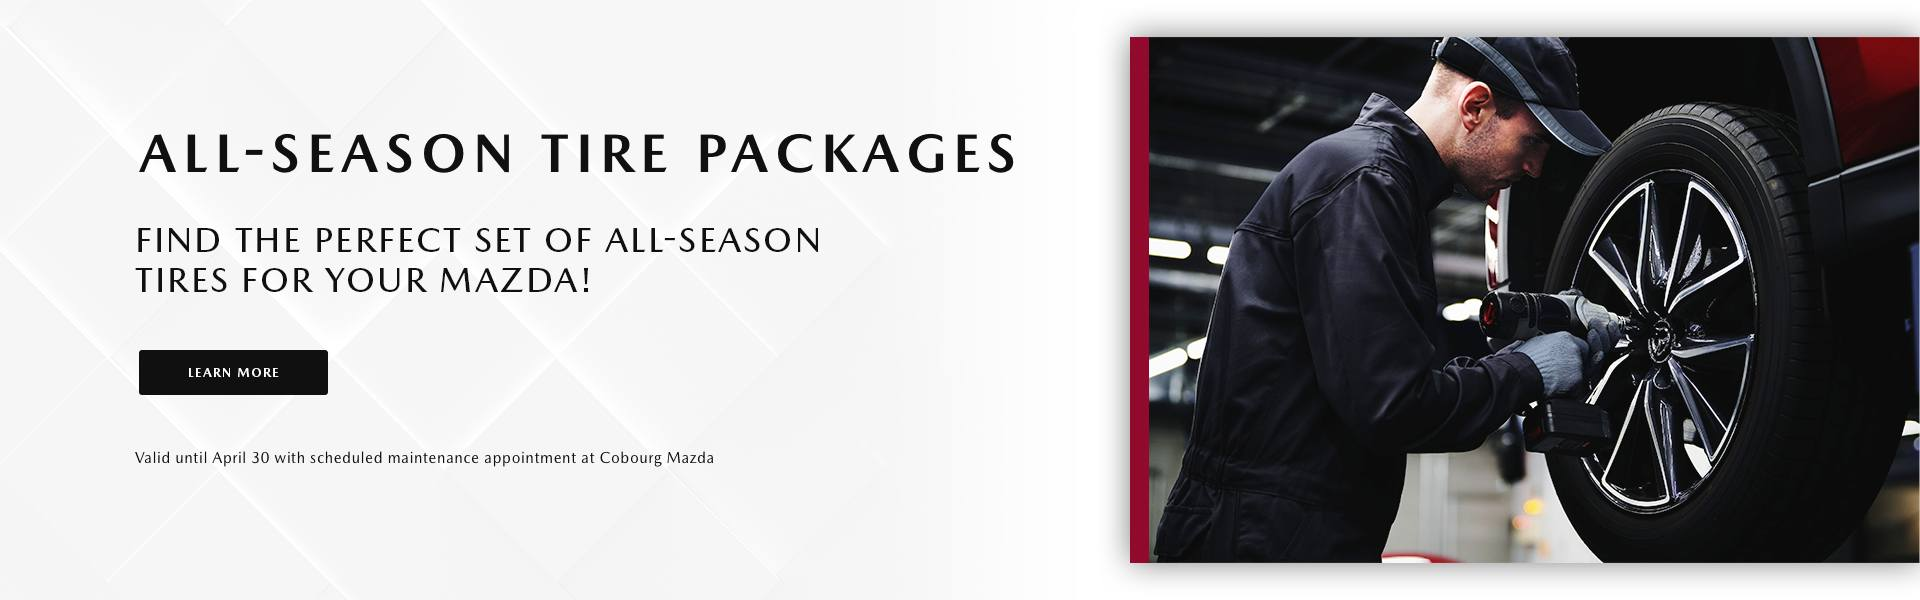 All Season Tire Package